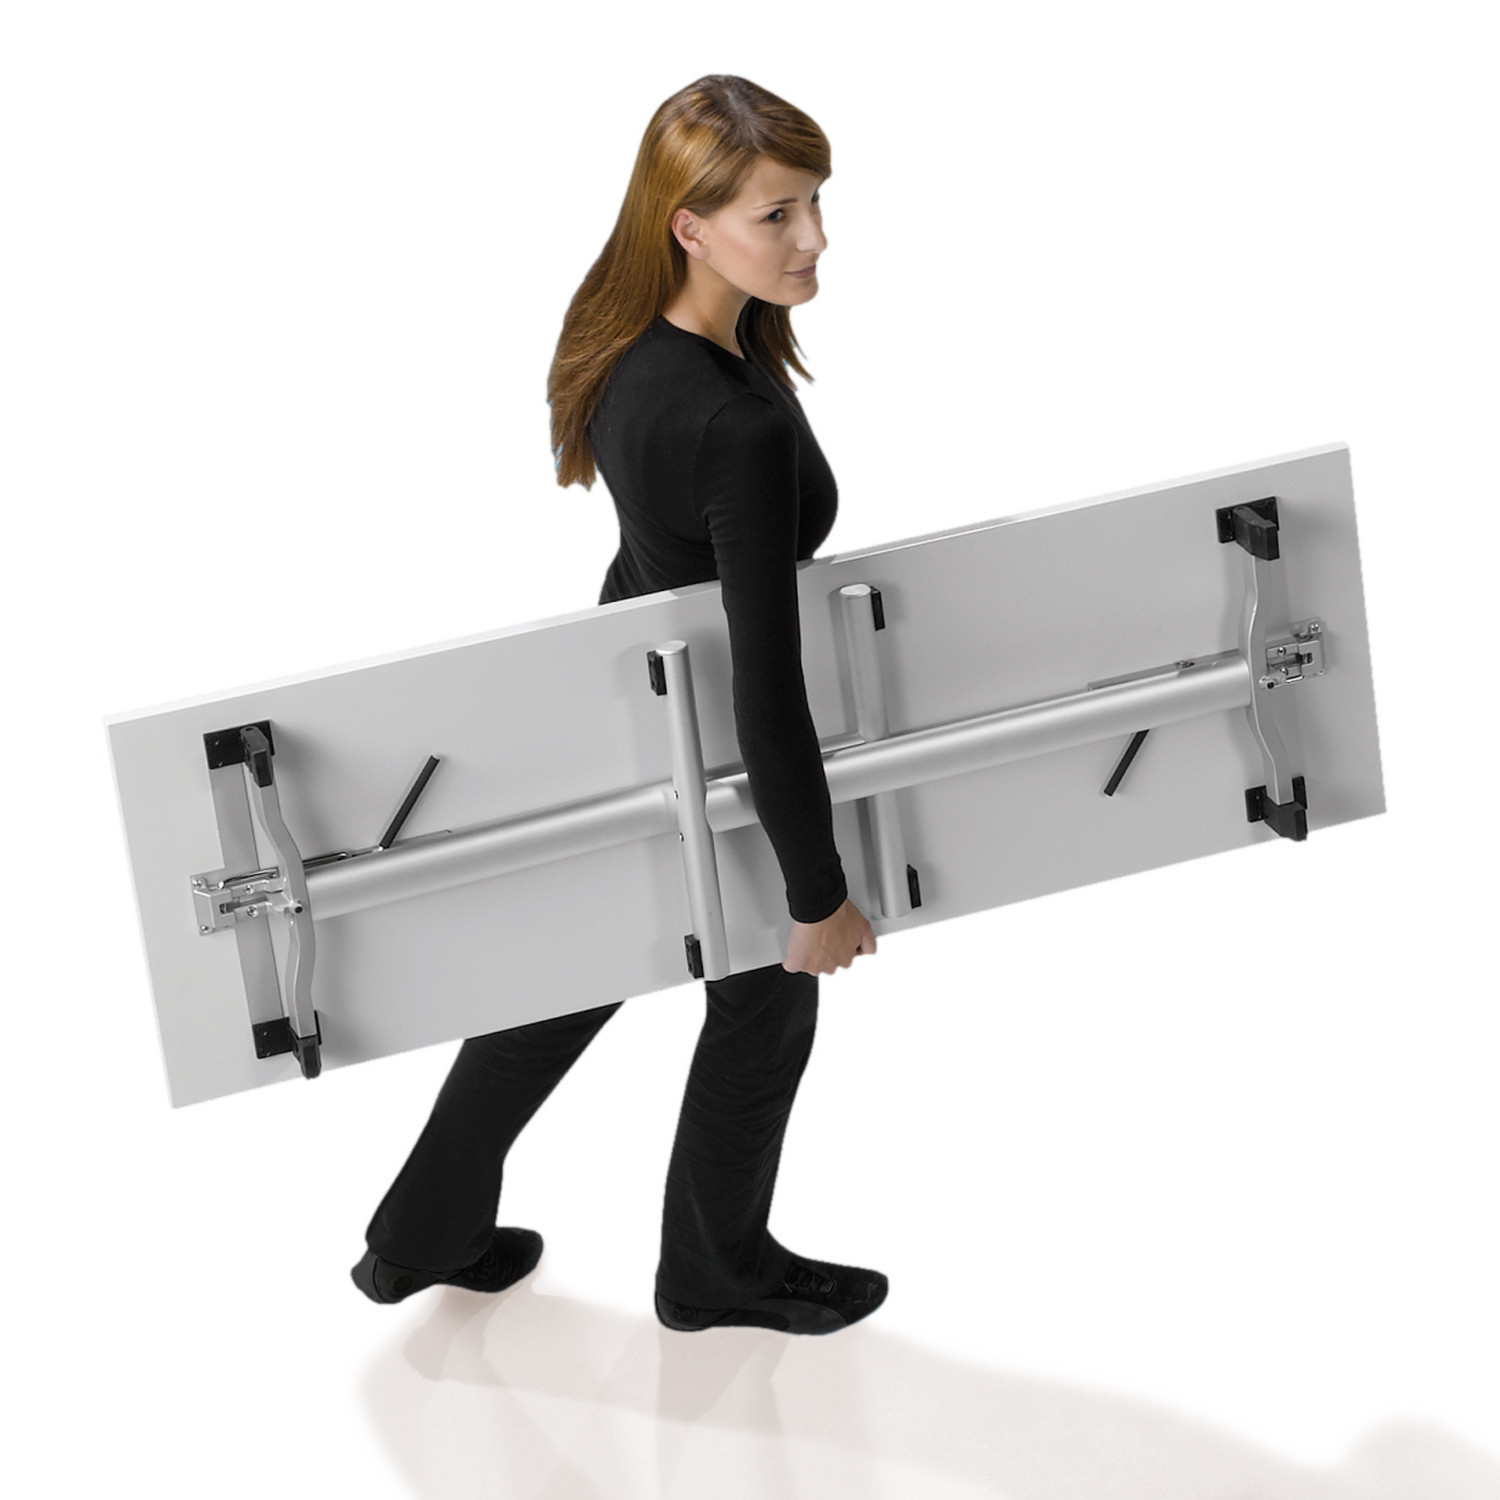 Sleight UltraLight Table only weights 12 kg.